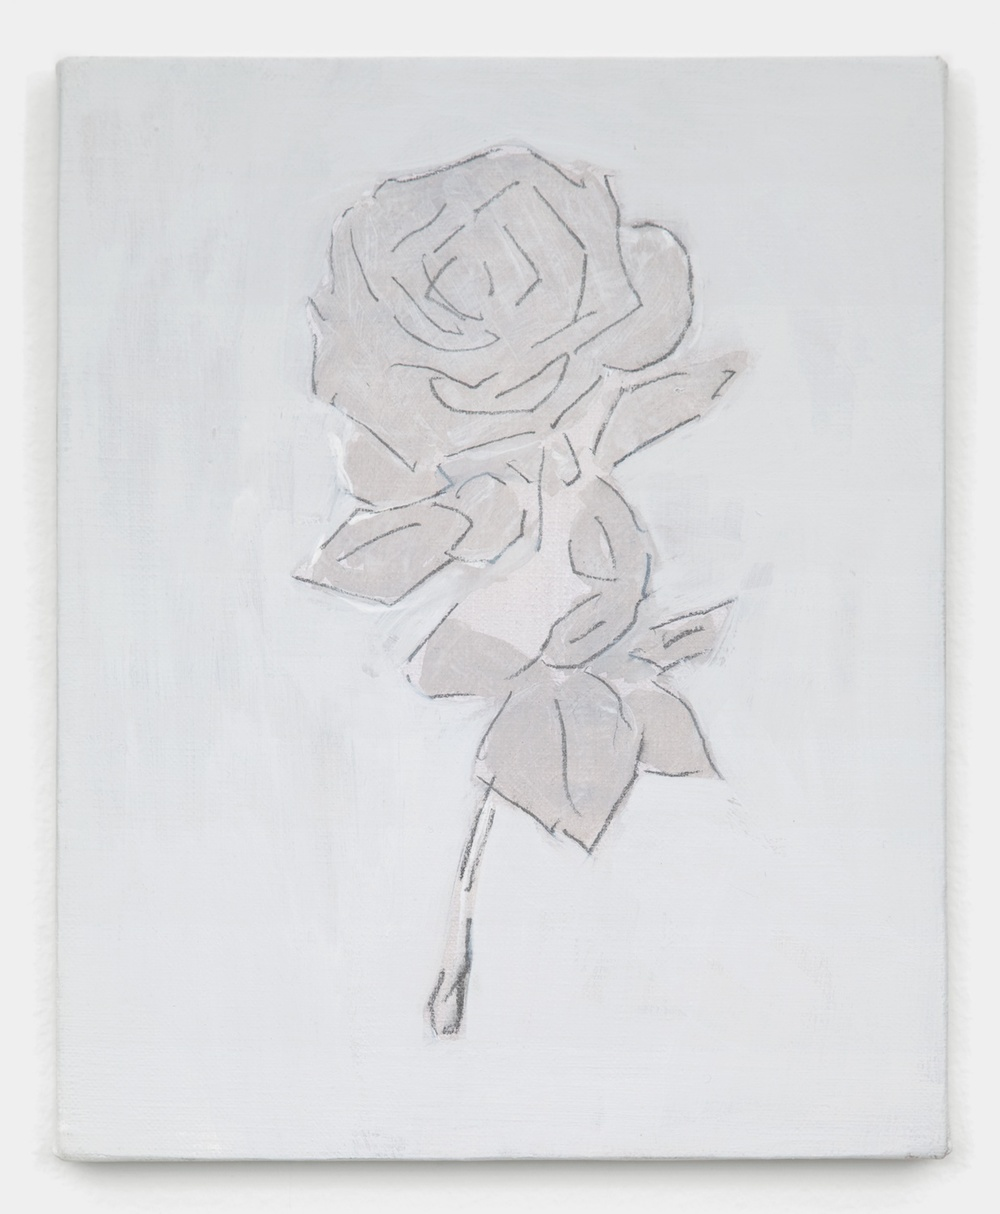 Shimon Minamikawa  Gray Flower  2011 Acrylic on canvas 10 ¾h x 8 ¾w in SMin002